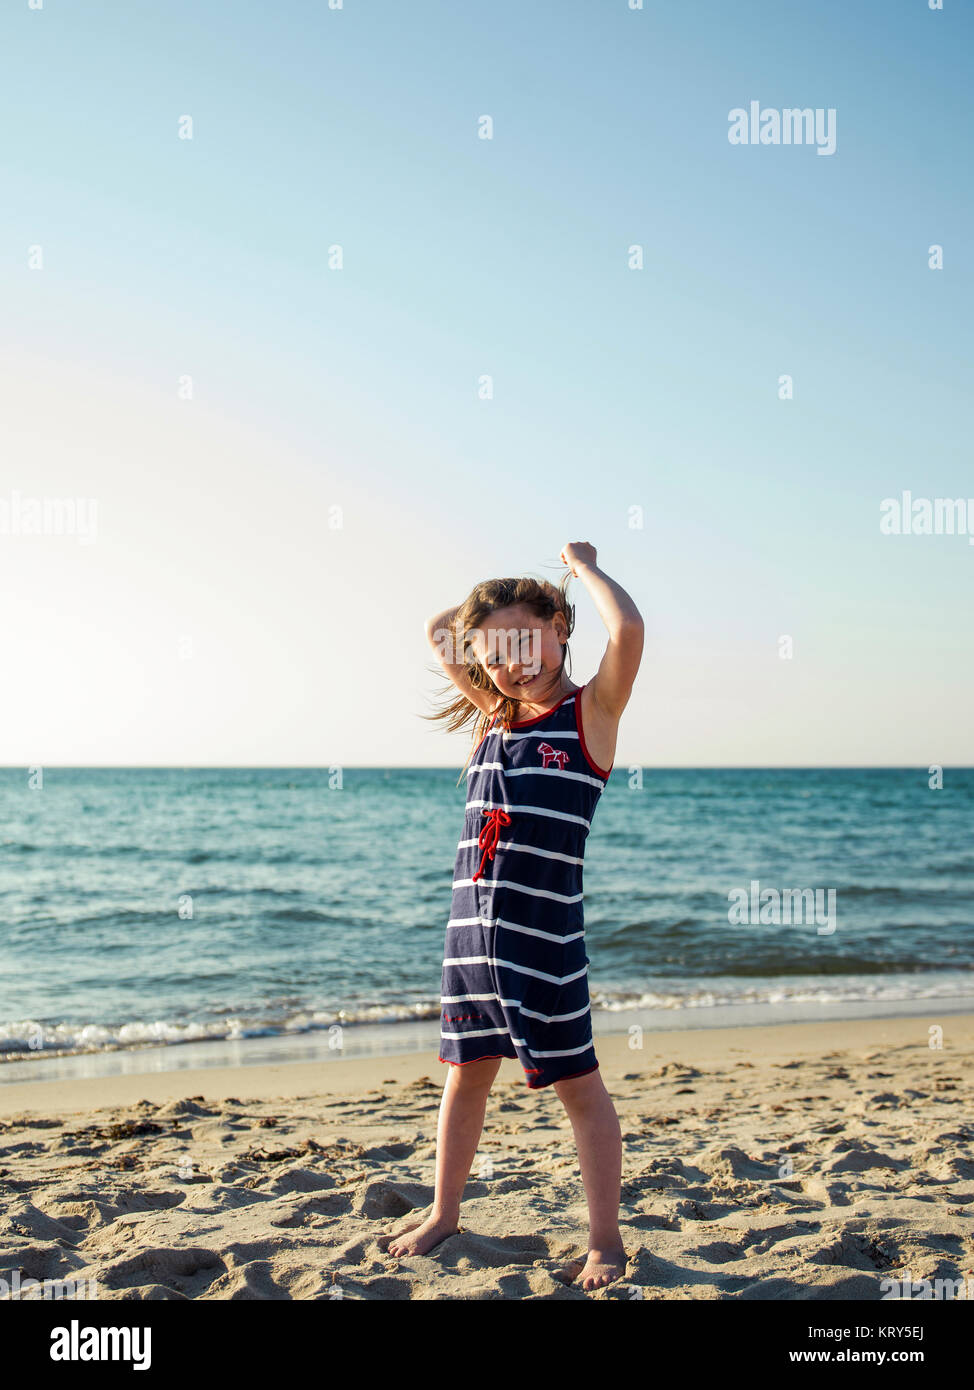 A young girl at the beach - Stock Image